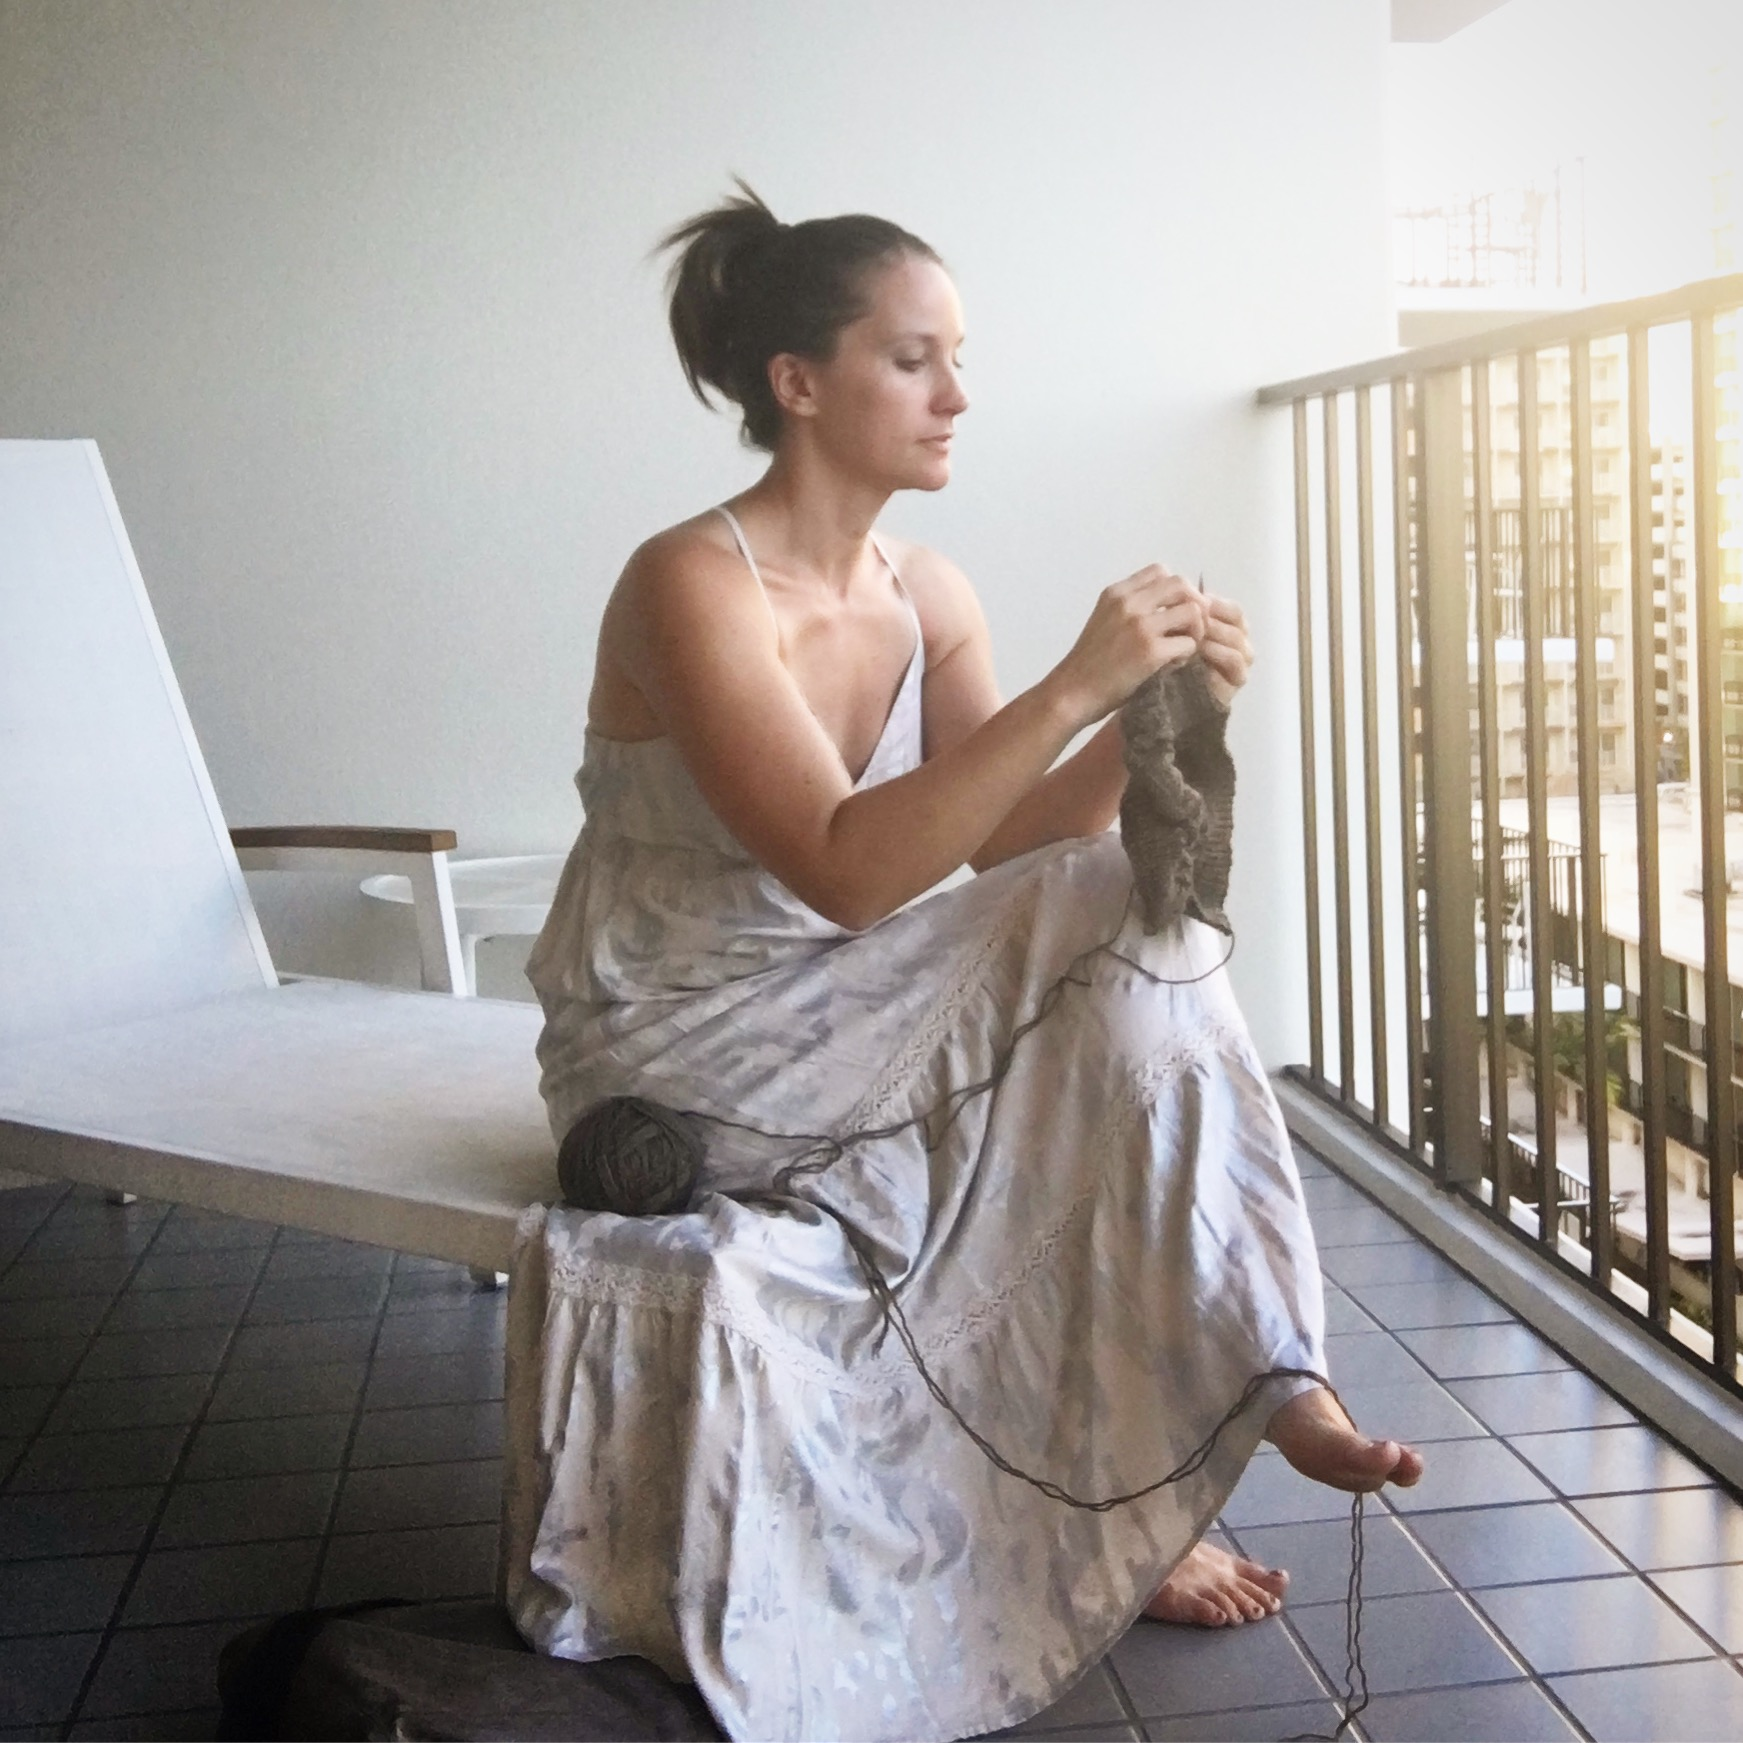 Knitting a new design on a balcony in Hawaii.